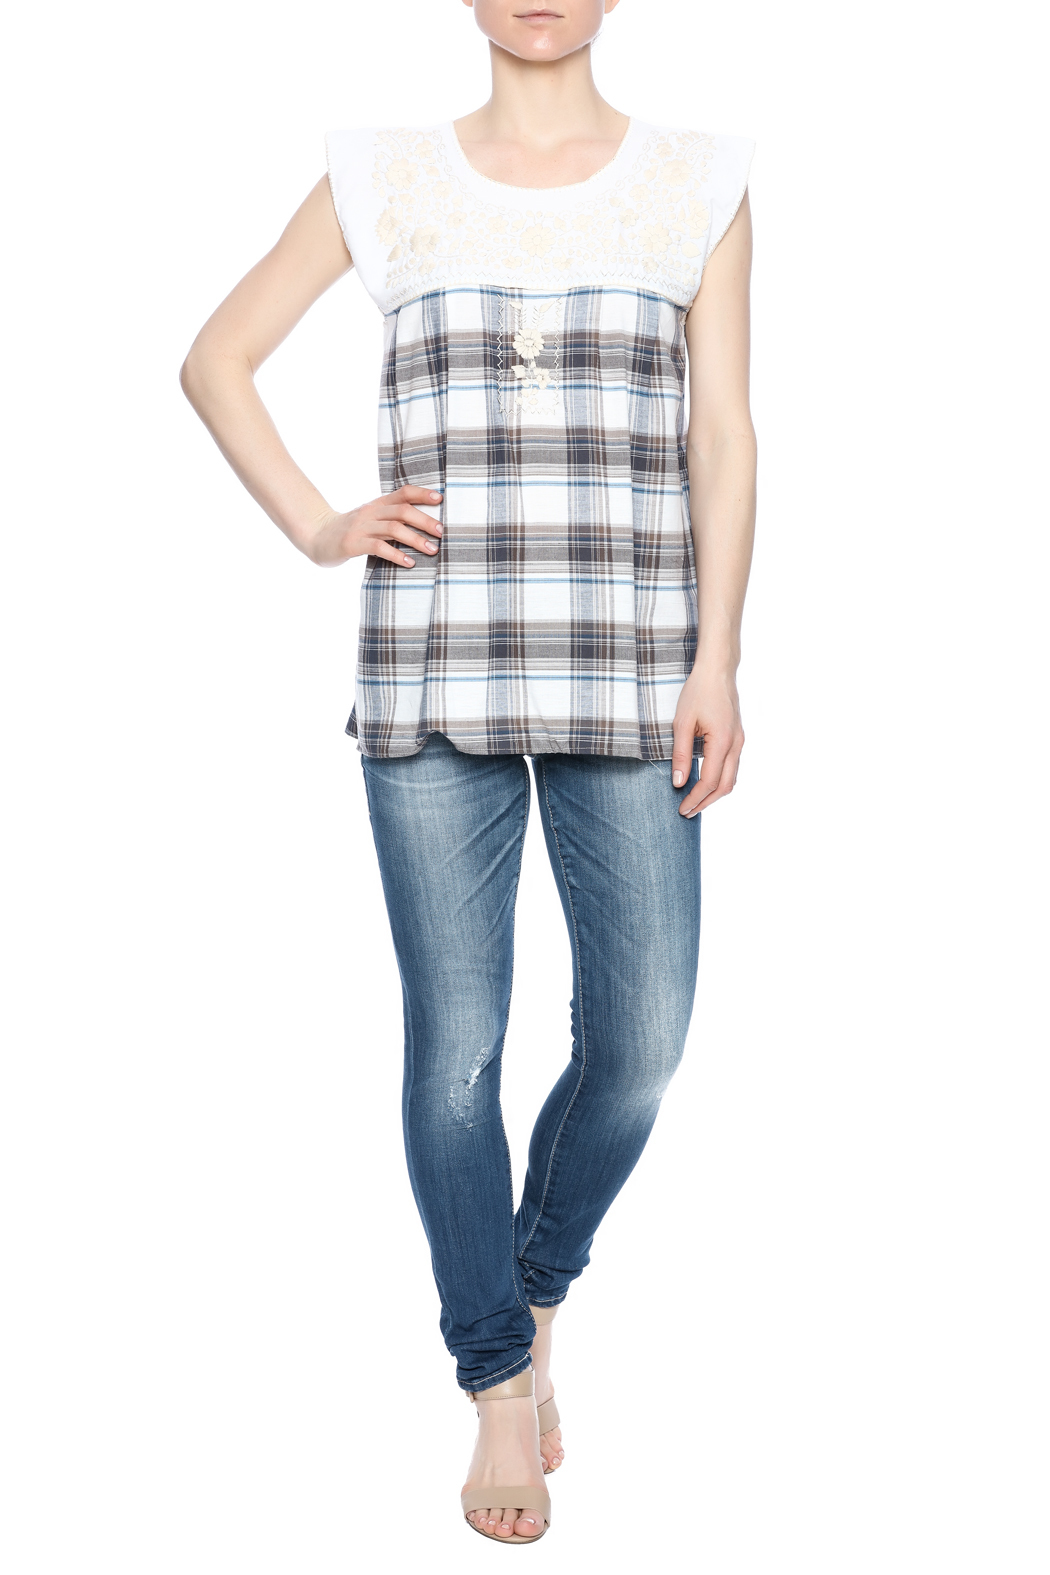 Nativa Embroidered Plaid Blouse - Front Full Image